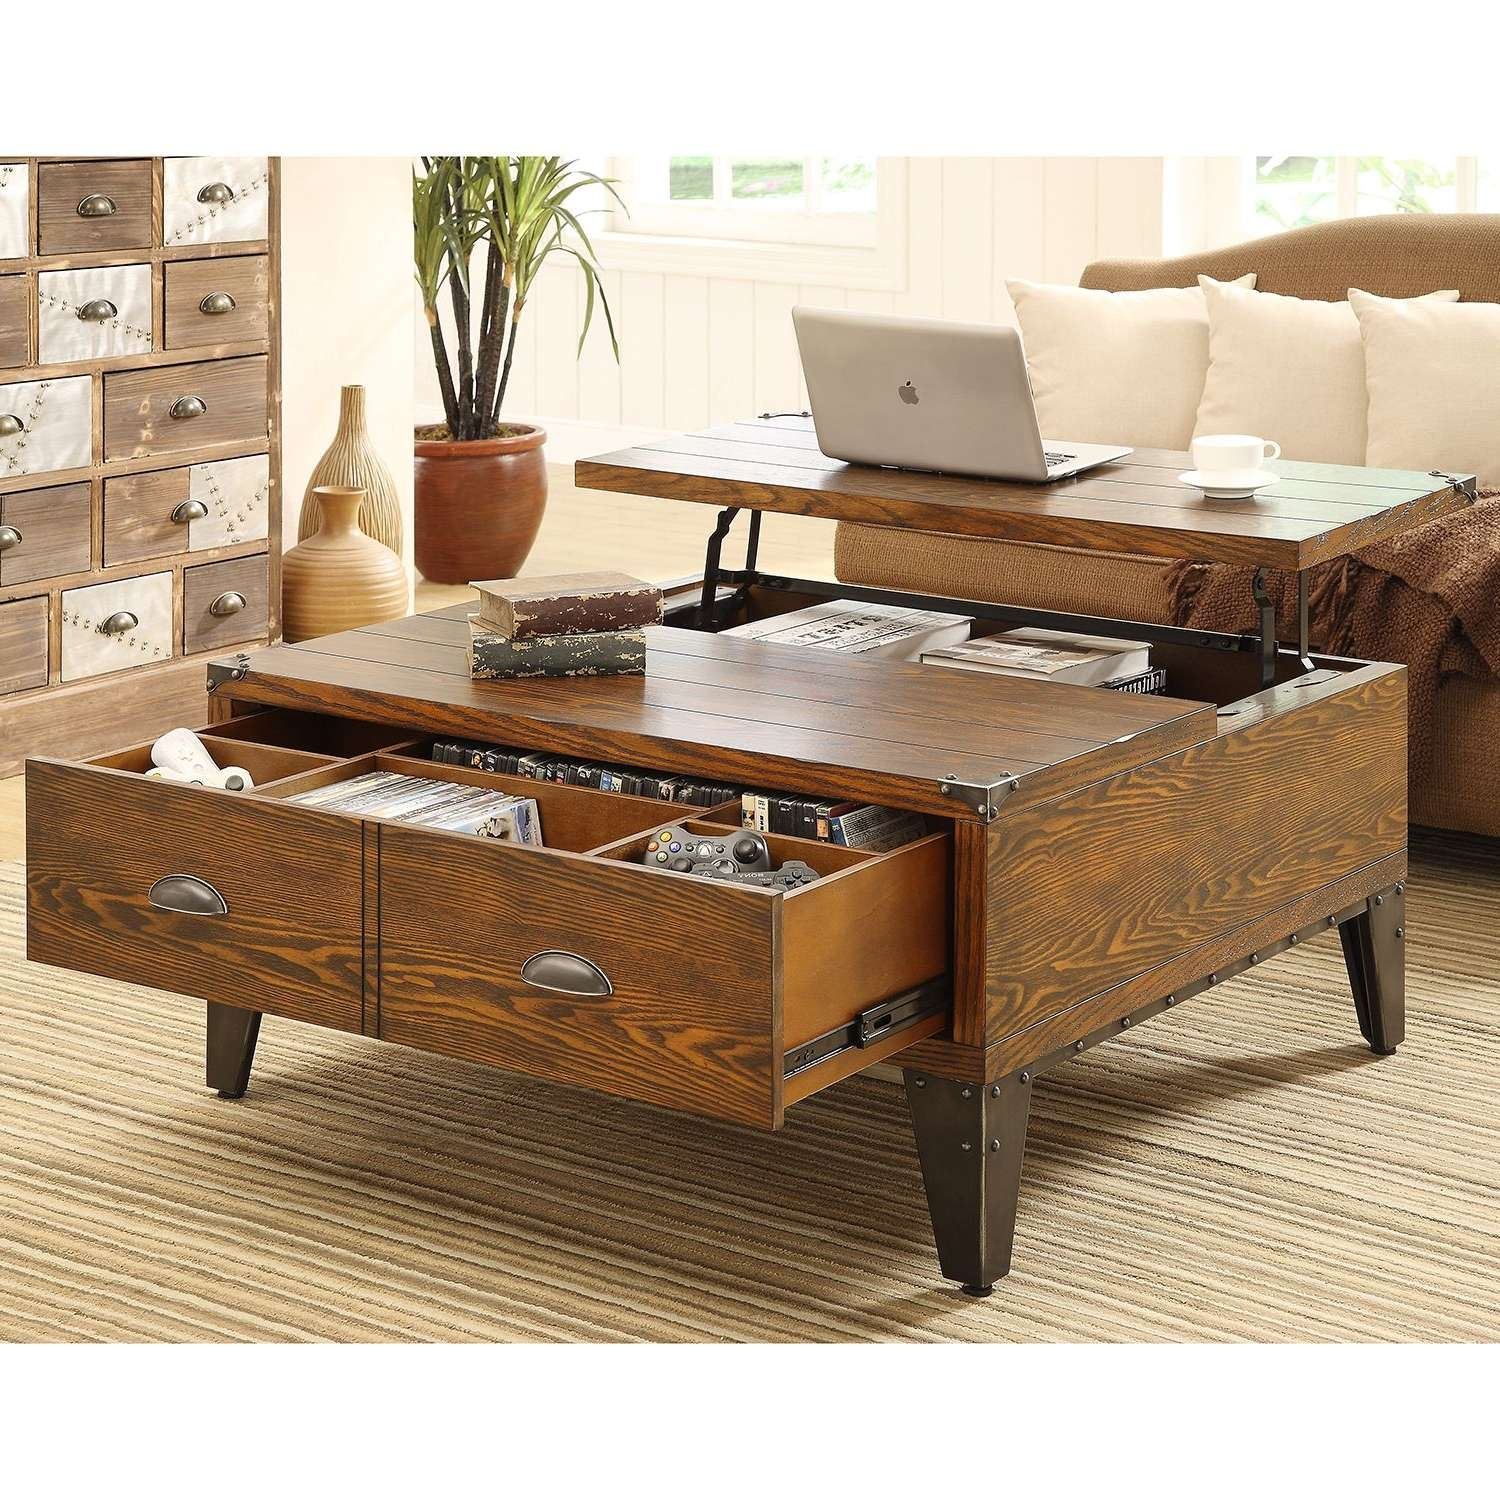 Most Recently Released Cheap Lift Top Coffee Tables Regarding Coffee Tables : Simple Table Light Oak Lift Top Coffee Table (View 20 of 20)